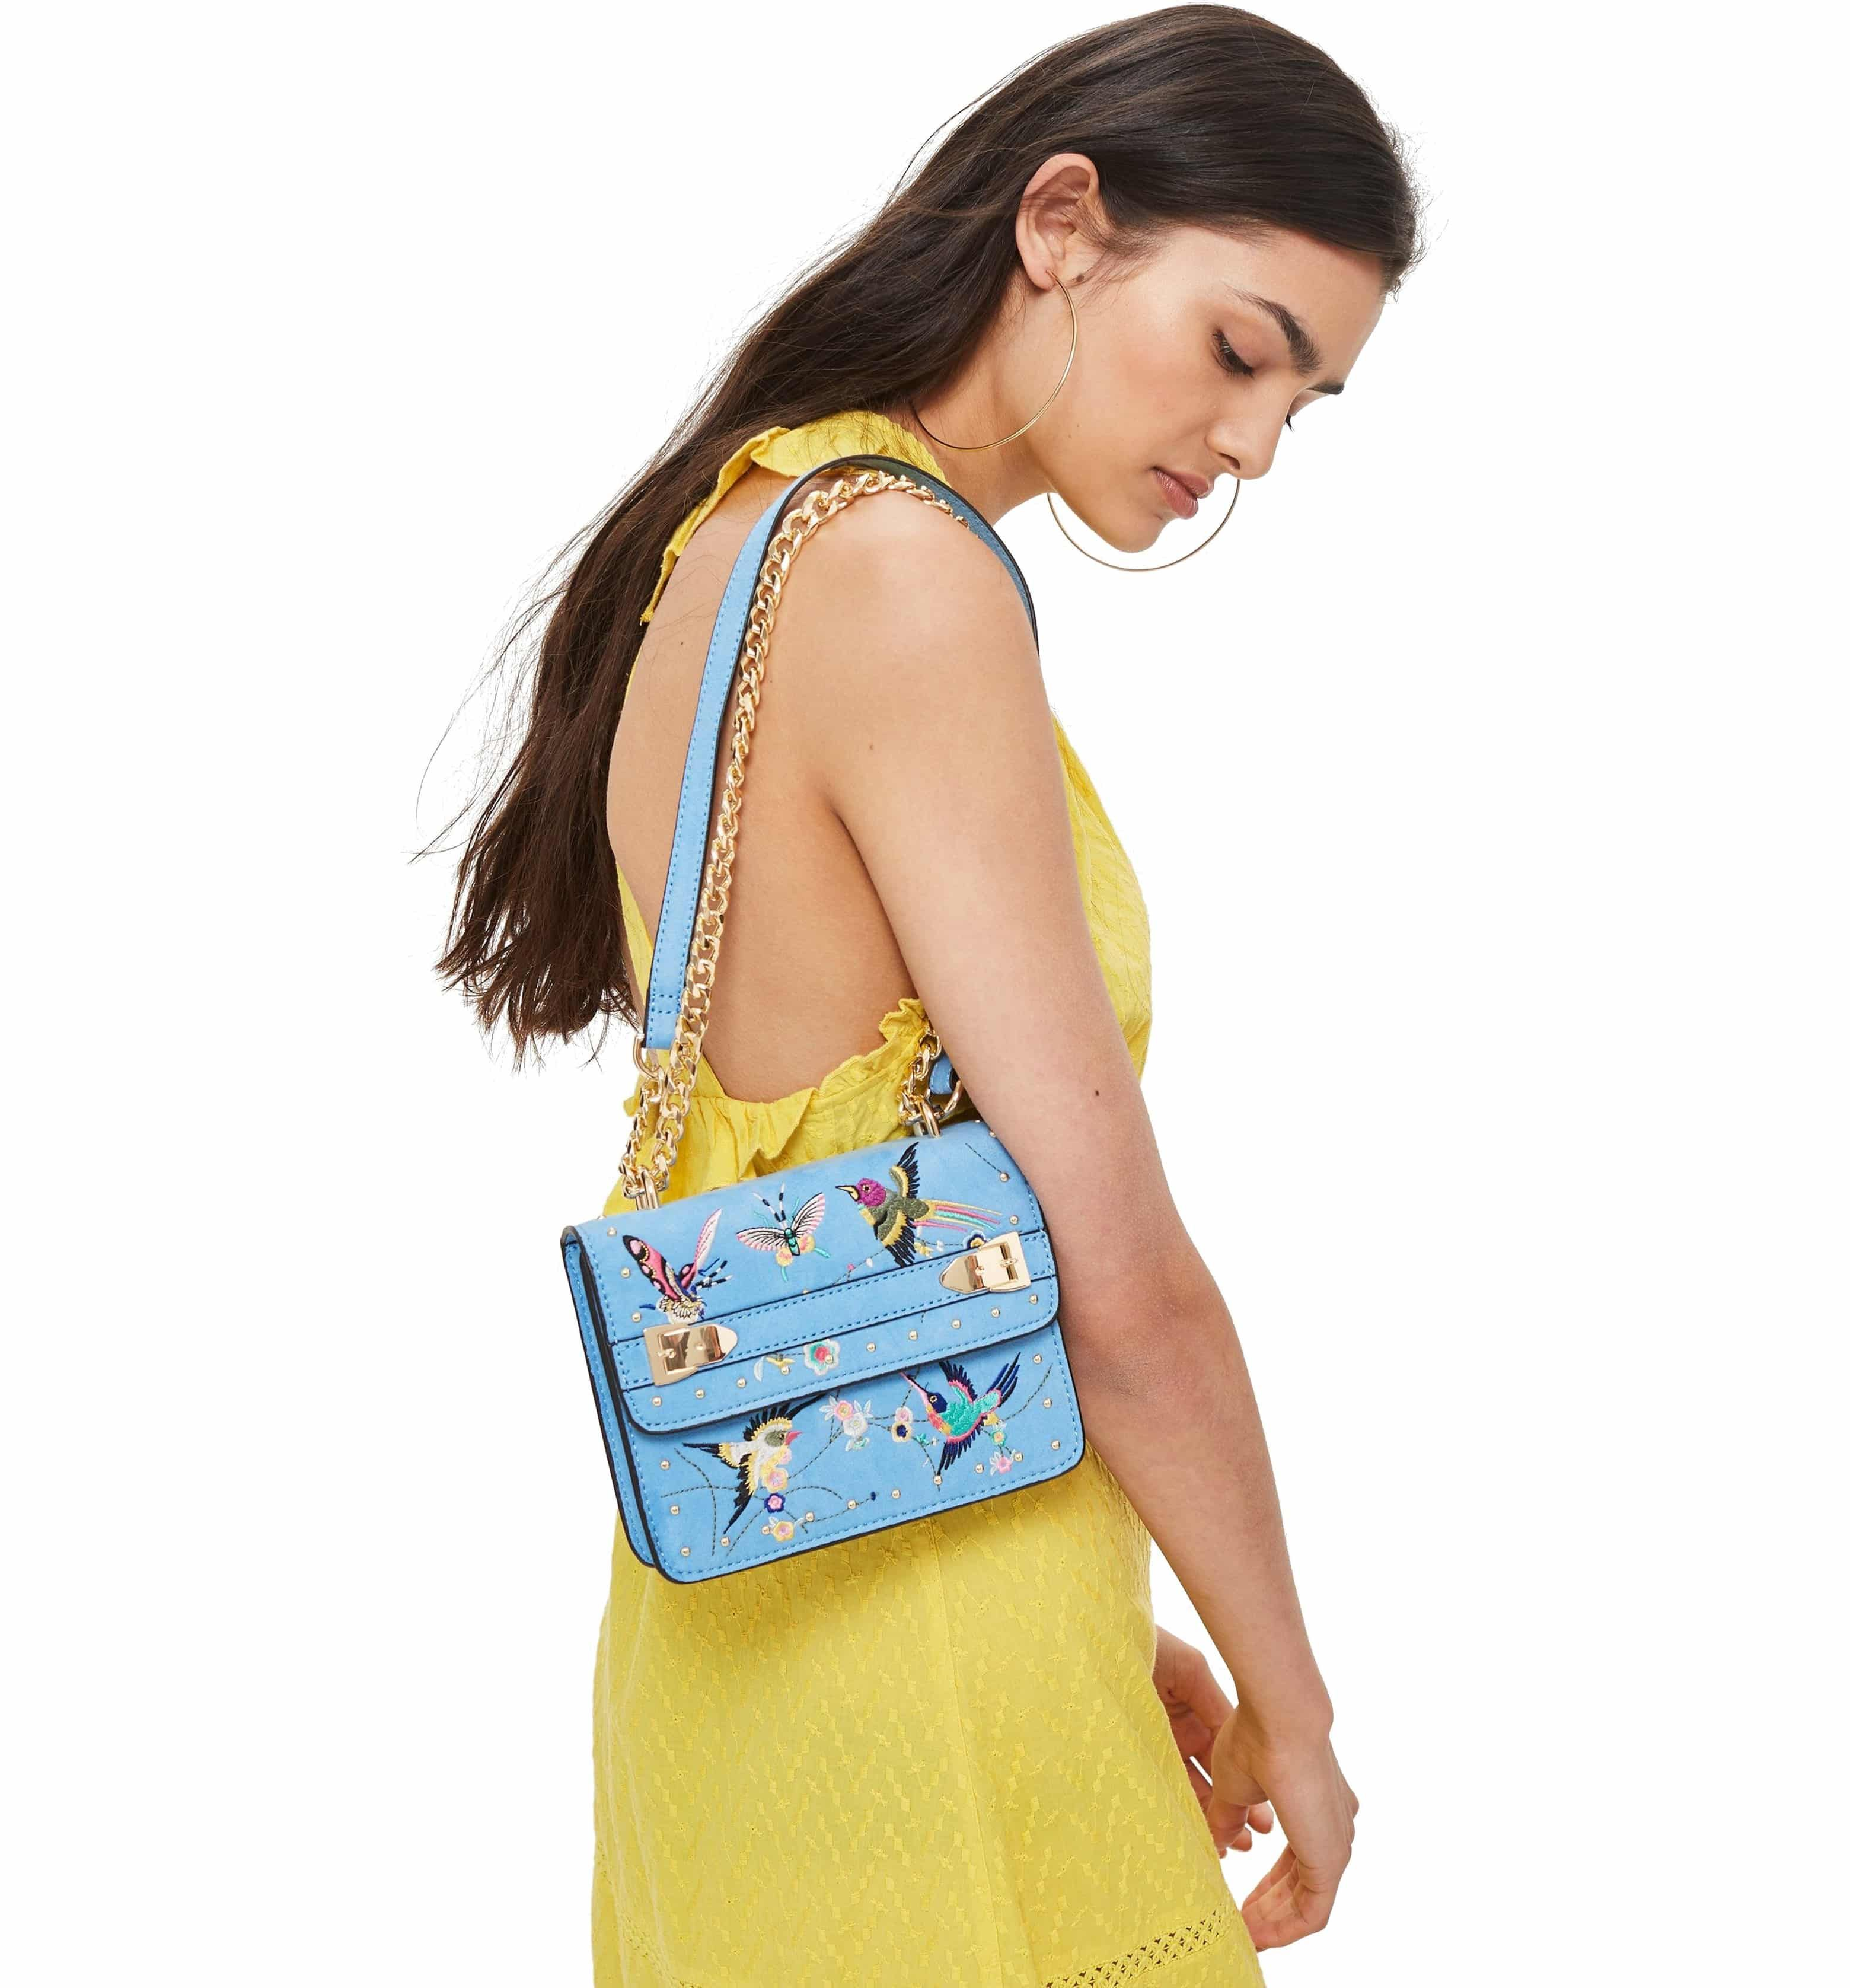 88a21a6d3e Polly Bird Embroidered Crossbody Bag